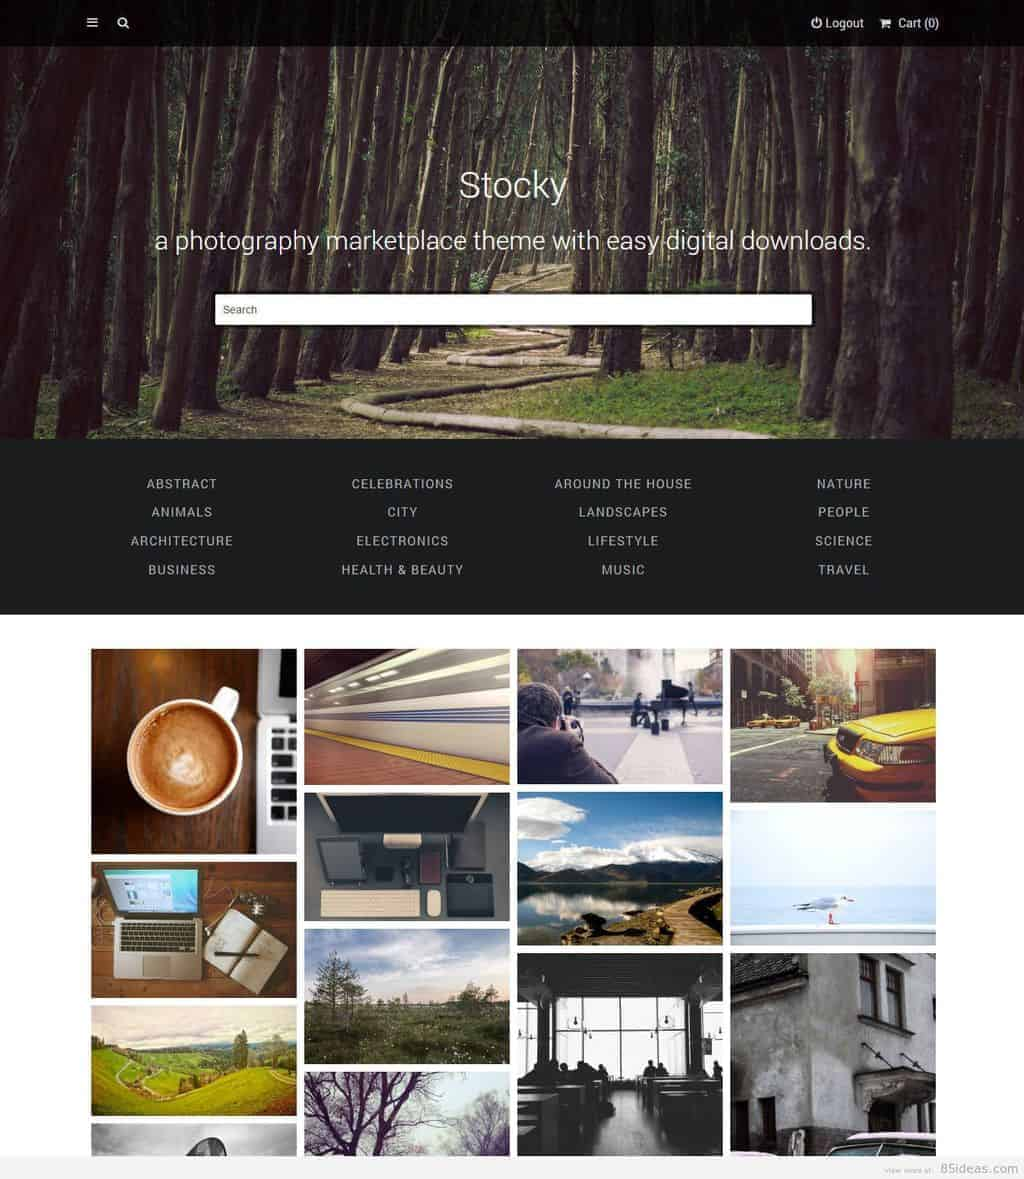 Stocky photography marketplace theme